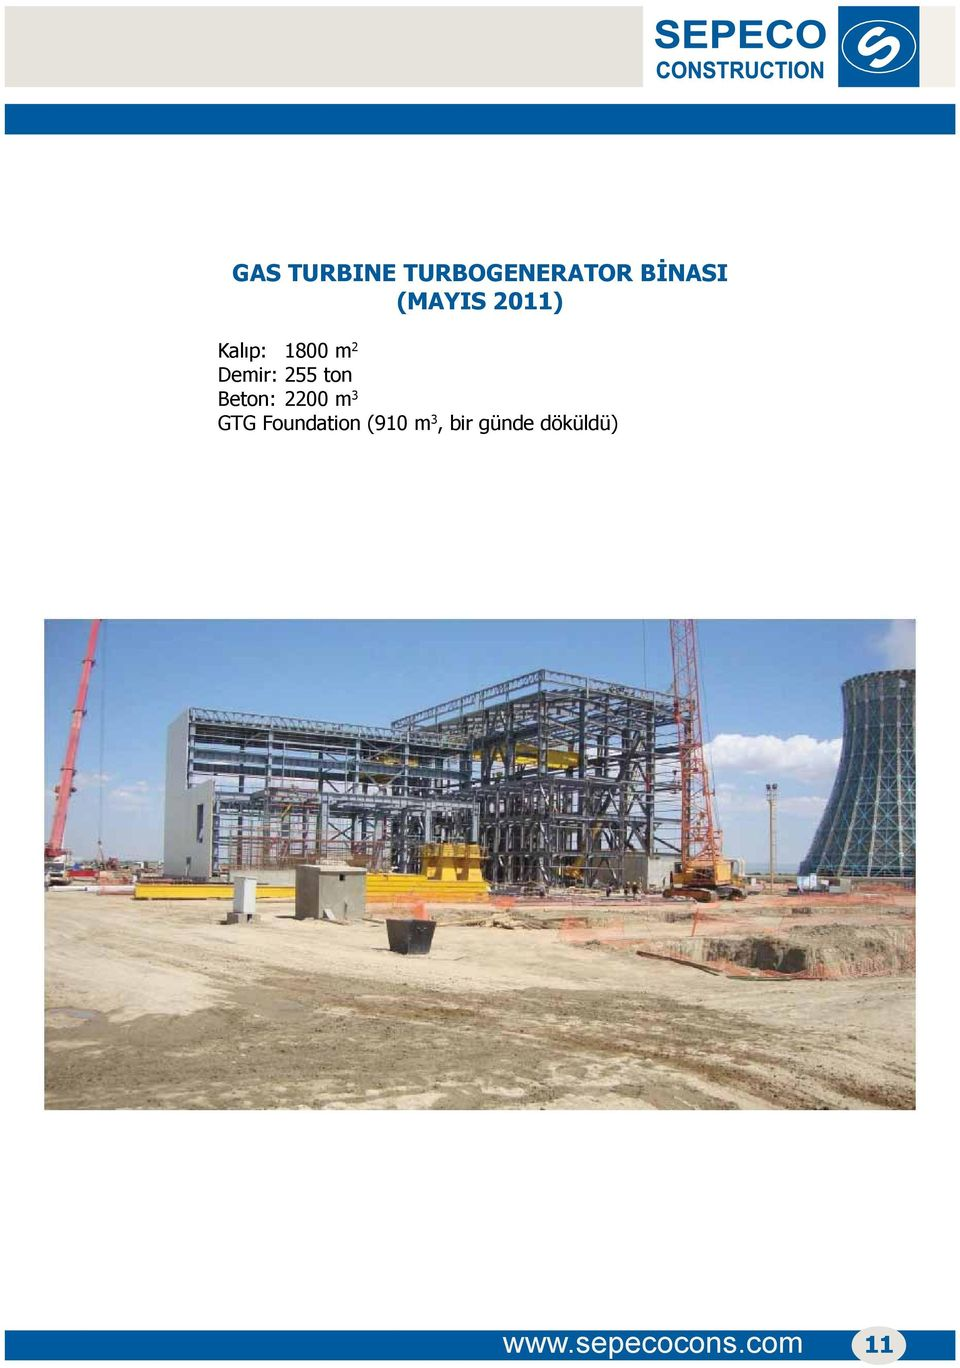 ton Beton: 2200 m 3 GTG Foundation (910